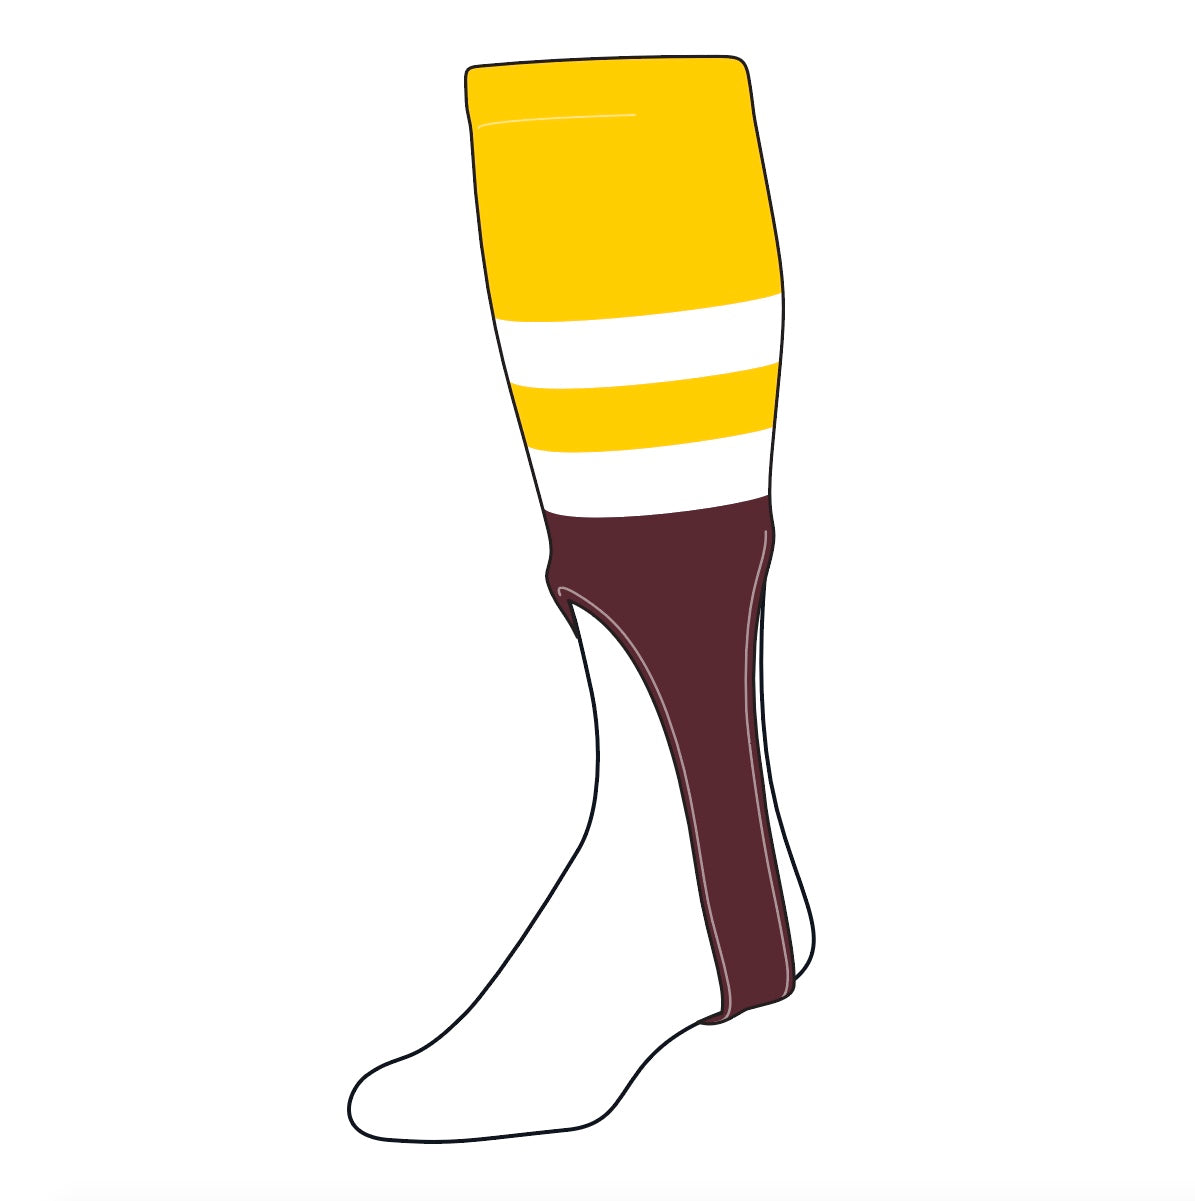 TCK Baseball Stirrups Medium (200G, 9in) Gold, White, Maroon